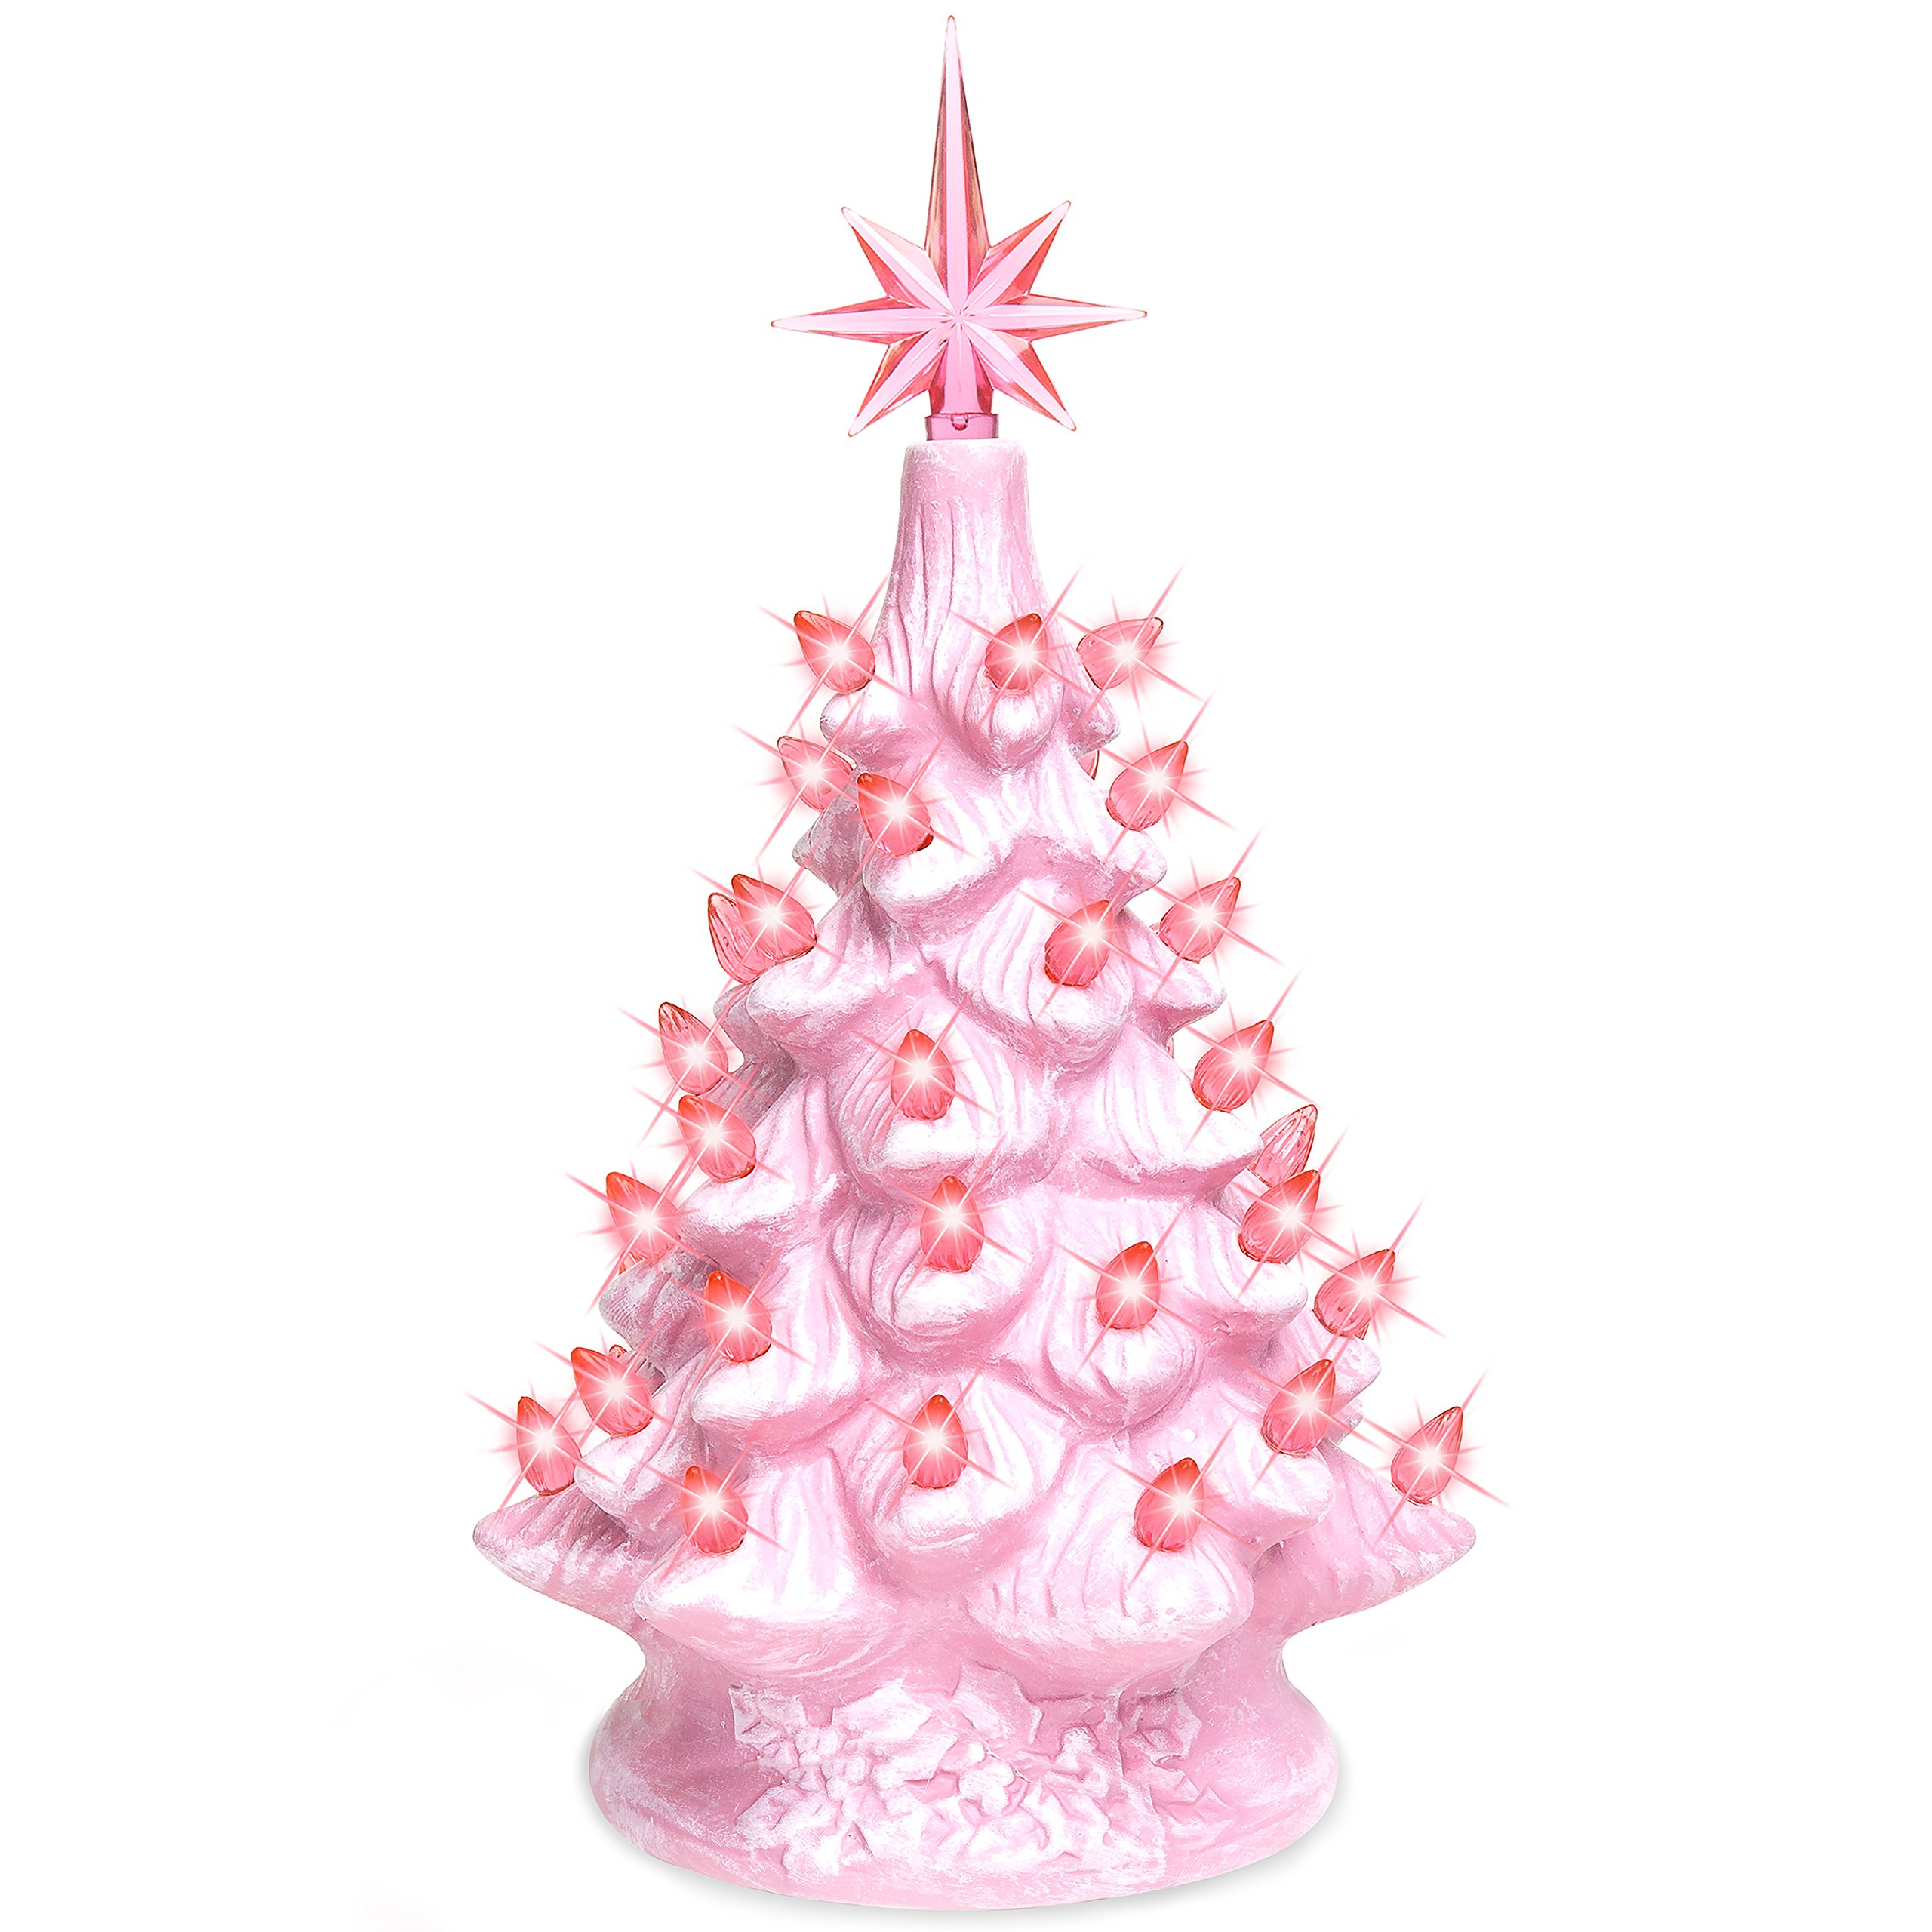 Best Choice Products 11in Prelit Ceramic Tabletop Christmas Tree w/Lights - Pink